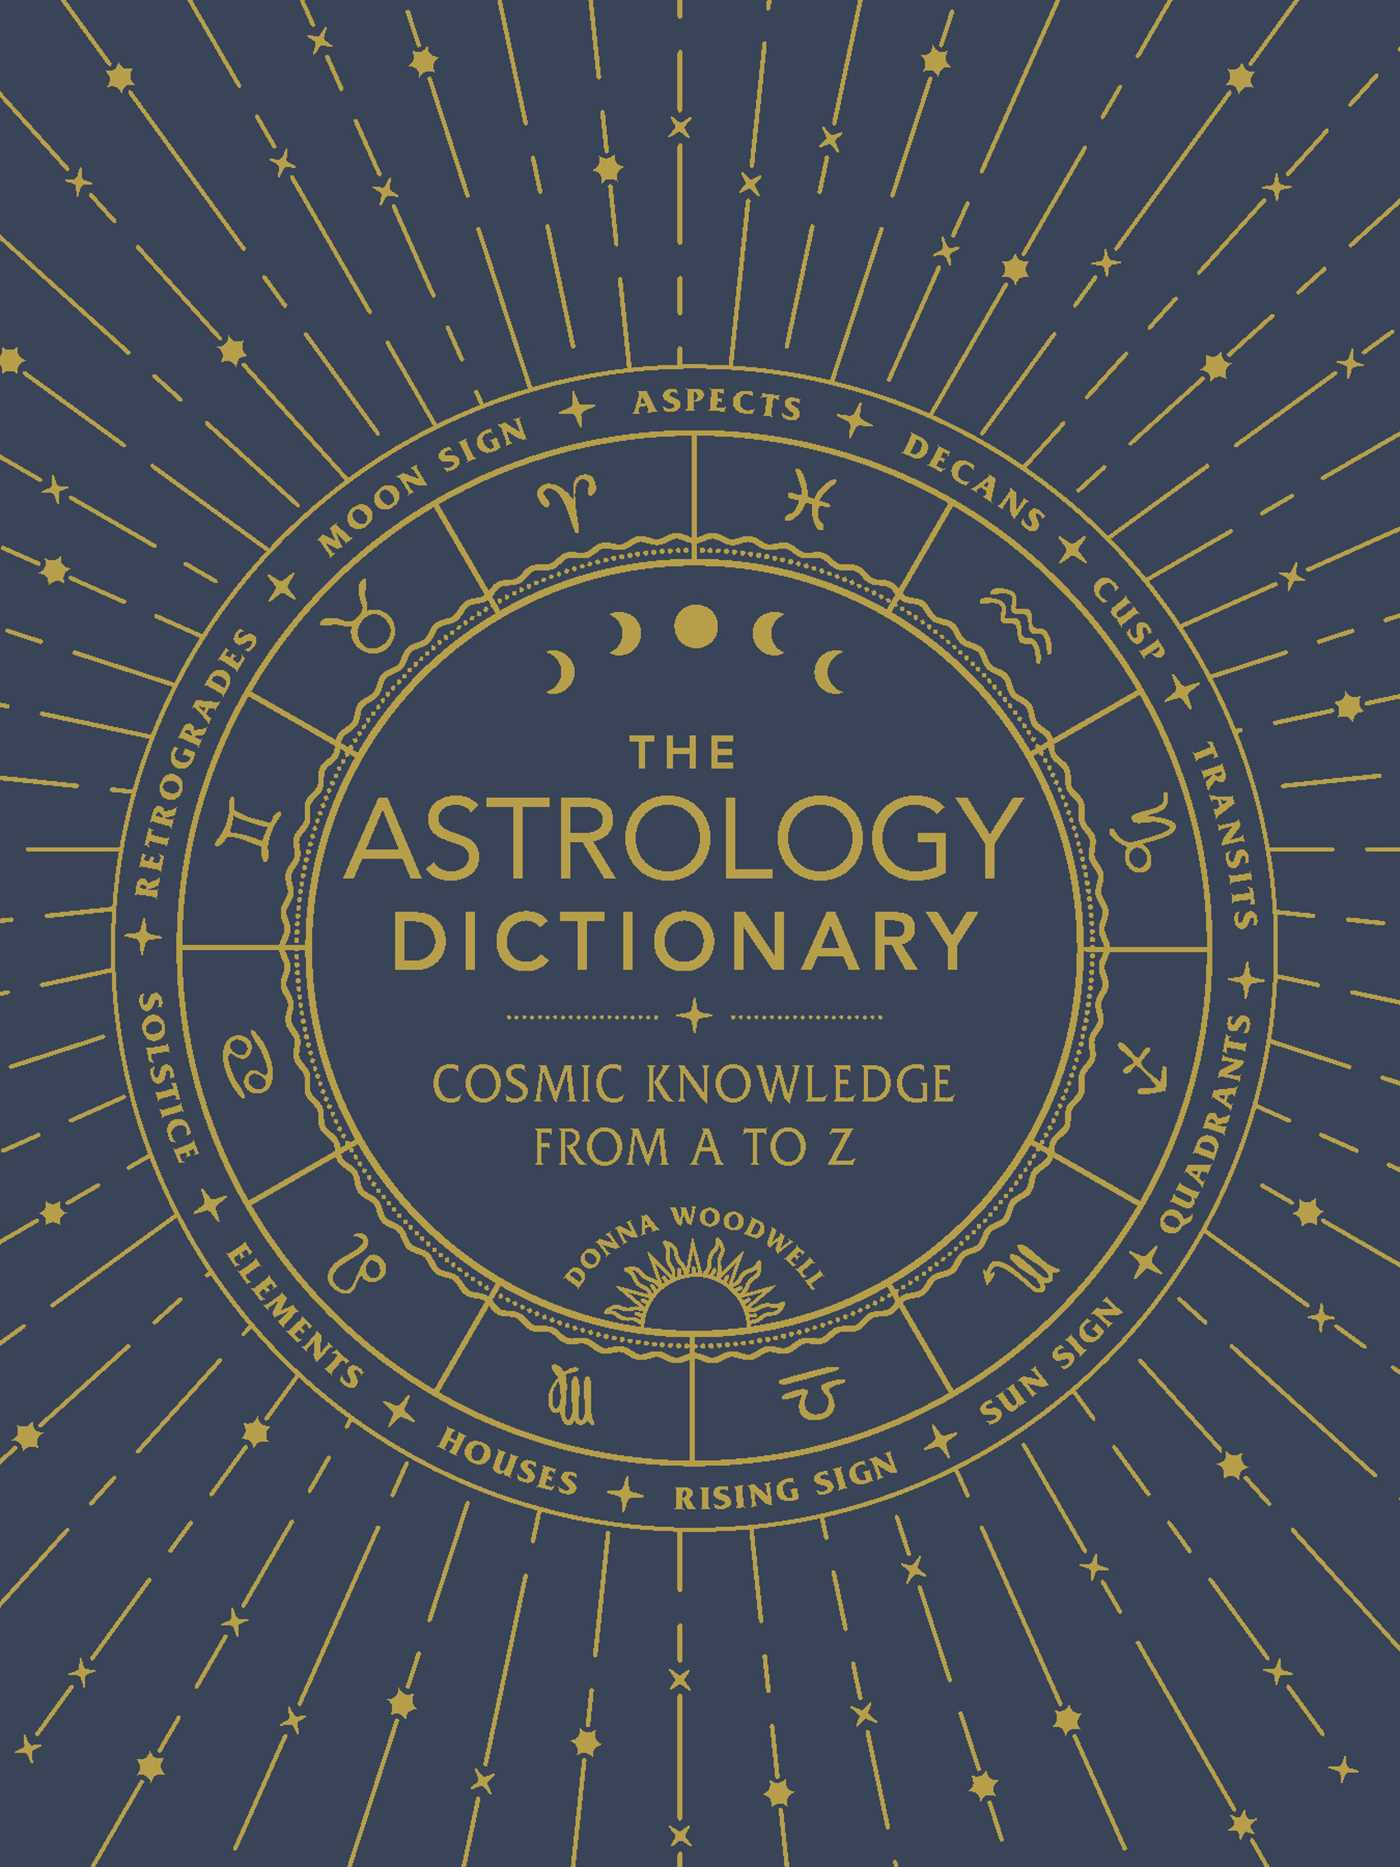 The Astrology Dictionary : Cosmic Knowledge from A to Z | Faith & Spirituality